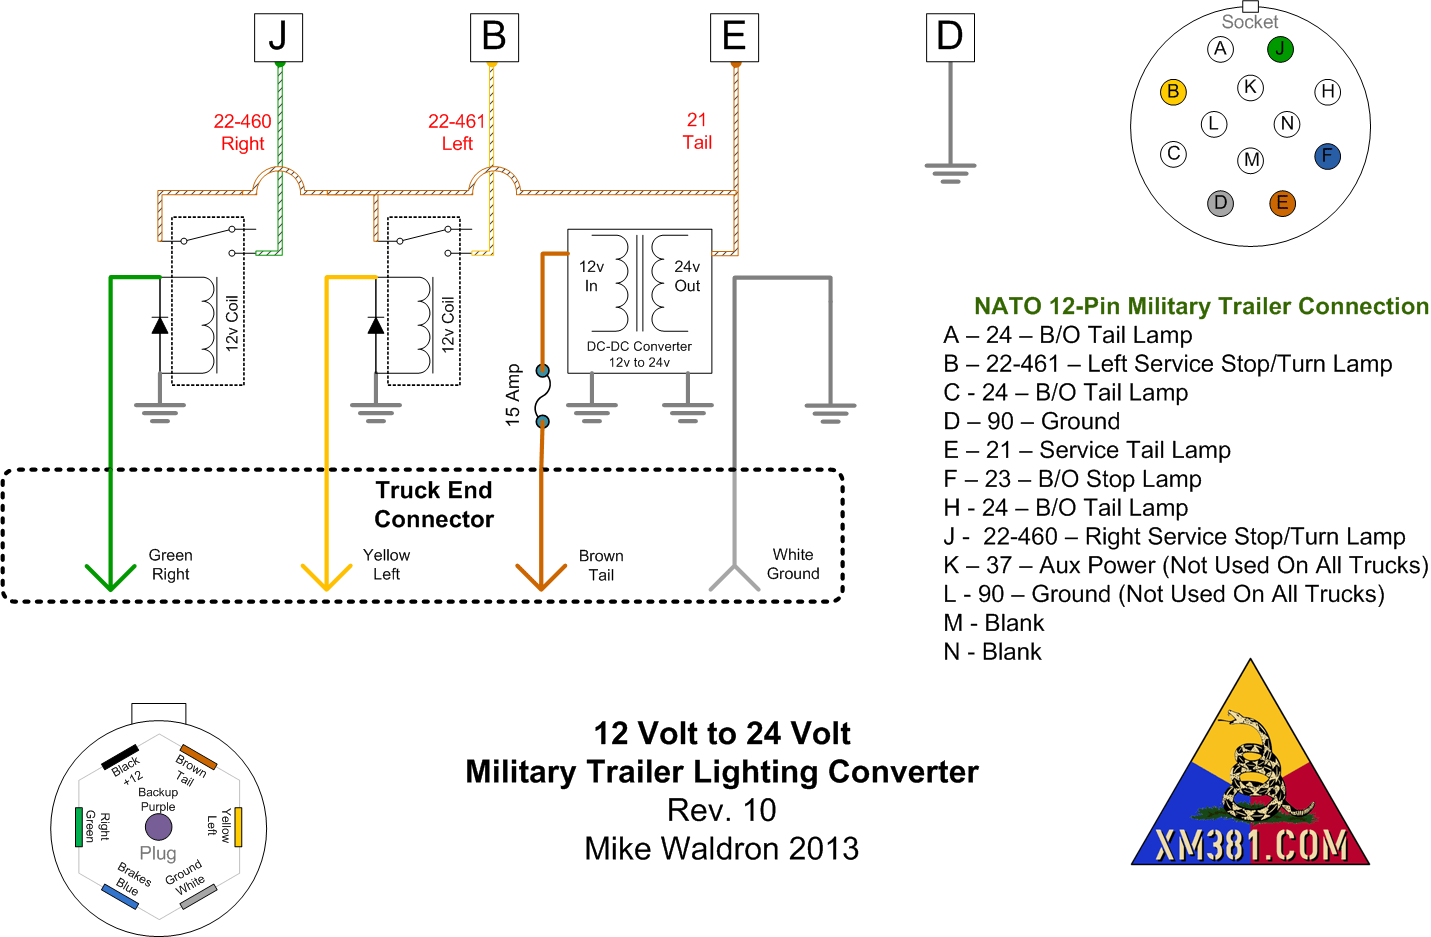 rv style plug wiring diagram metra harness xm381 12 volt civllian truck to 24 military trailer